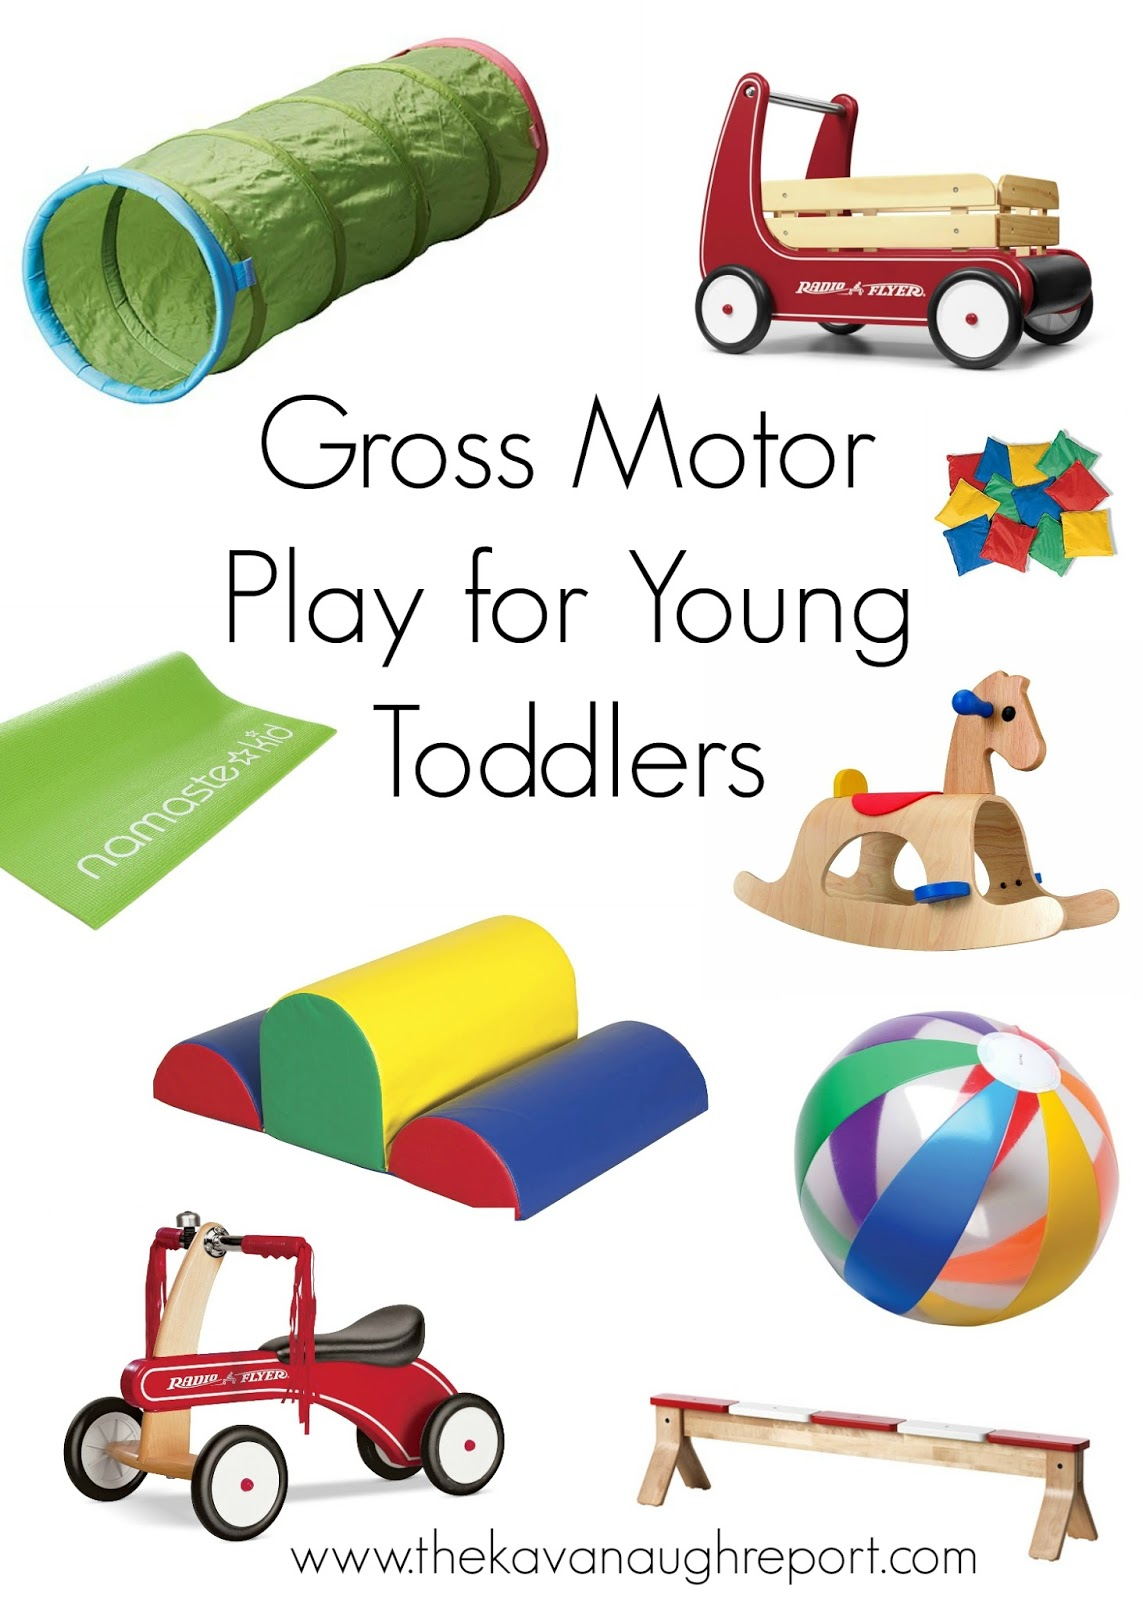 Gross Motor For Young Toddlers